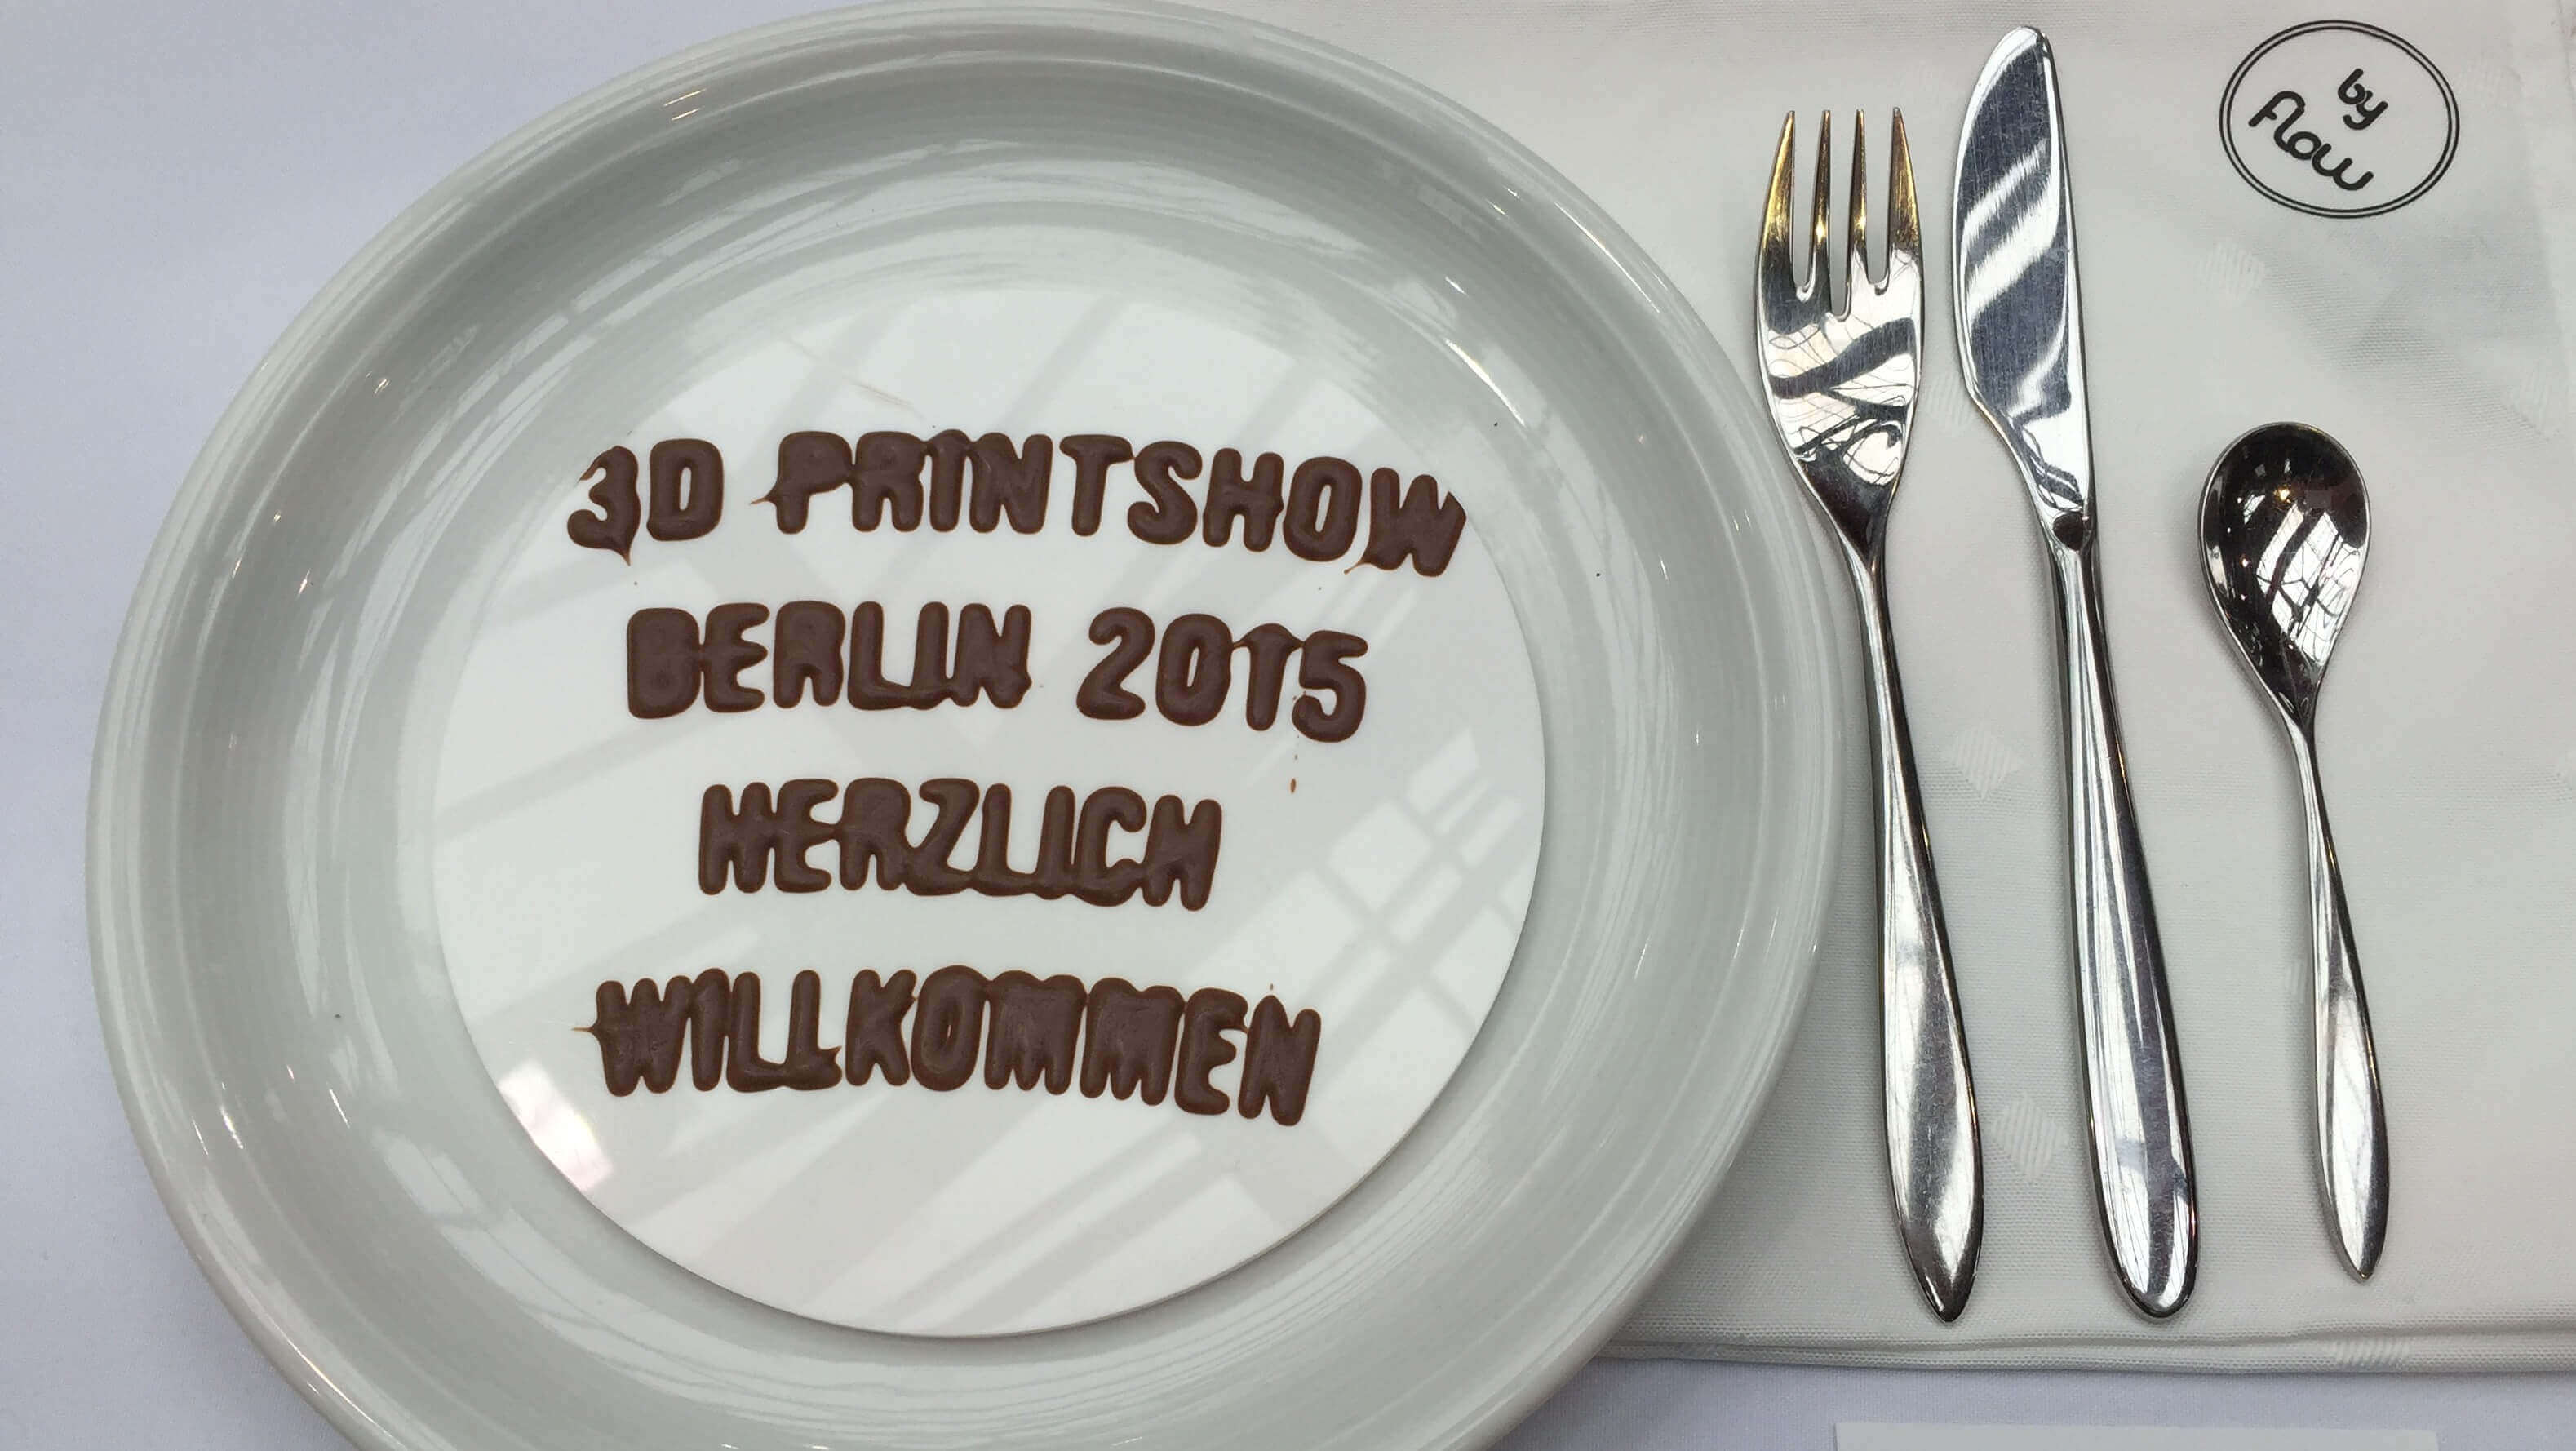 So, how was 3D Printshow Berlin? | All3DP